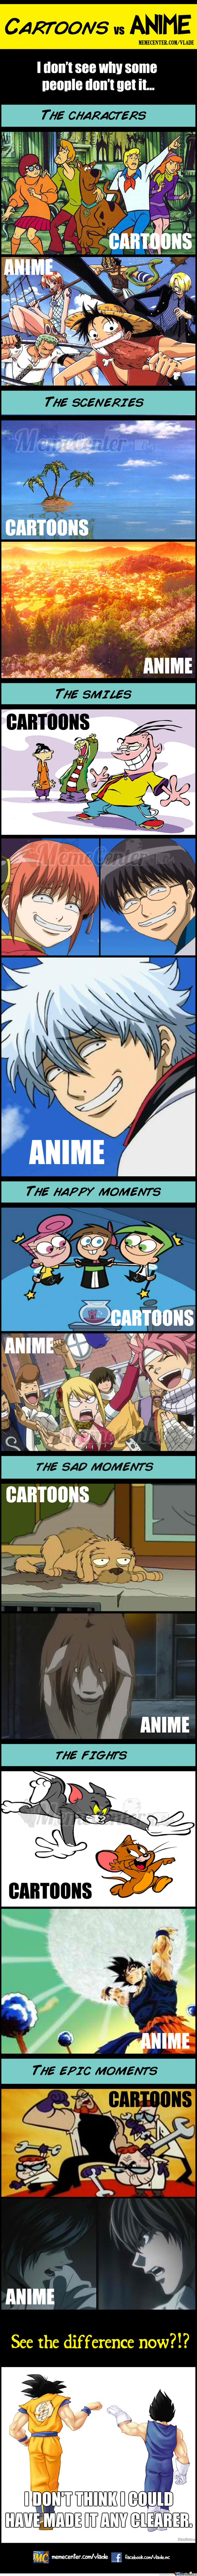 Cartoons Vs Anime